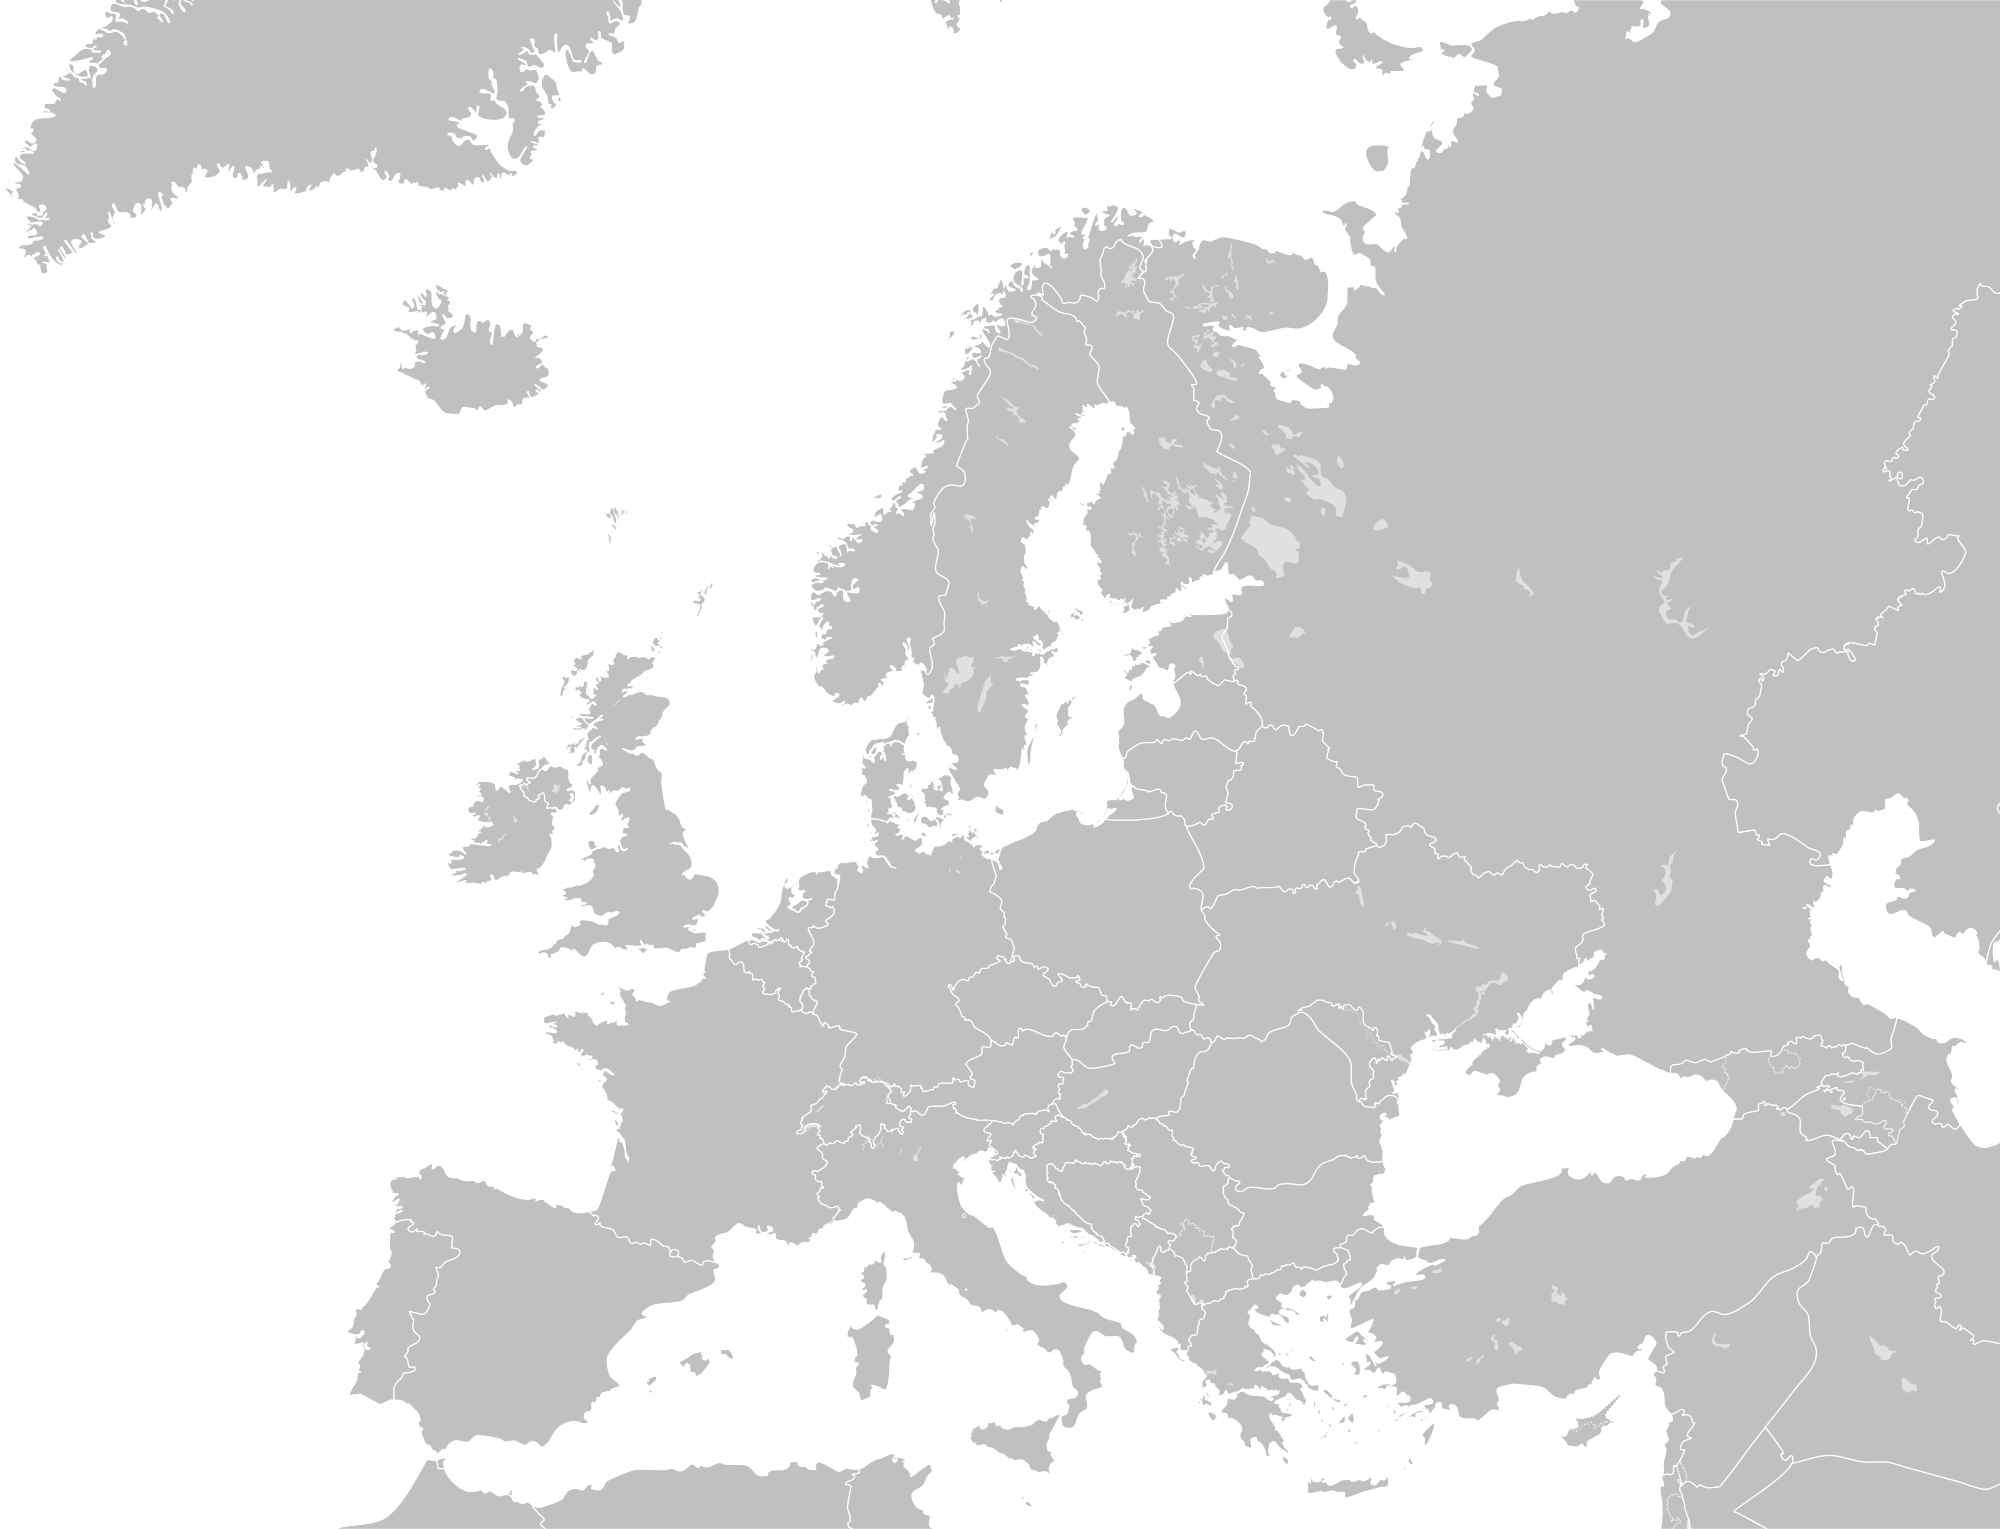 PNG Europe Map Transparent Europe Map.PNG Images..